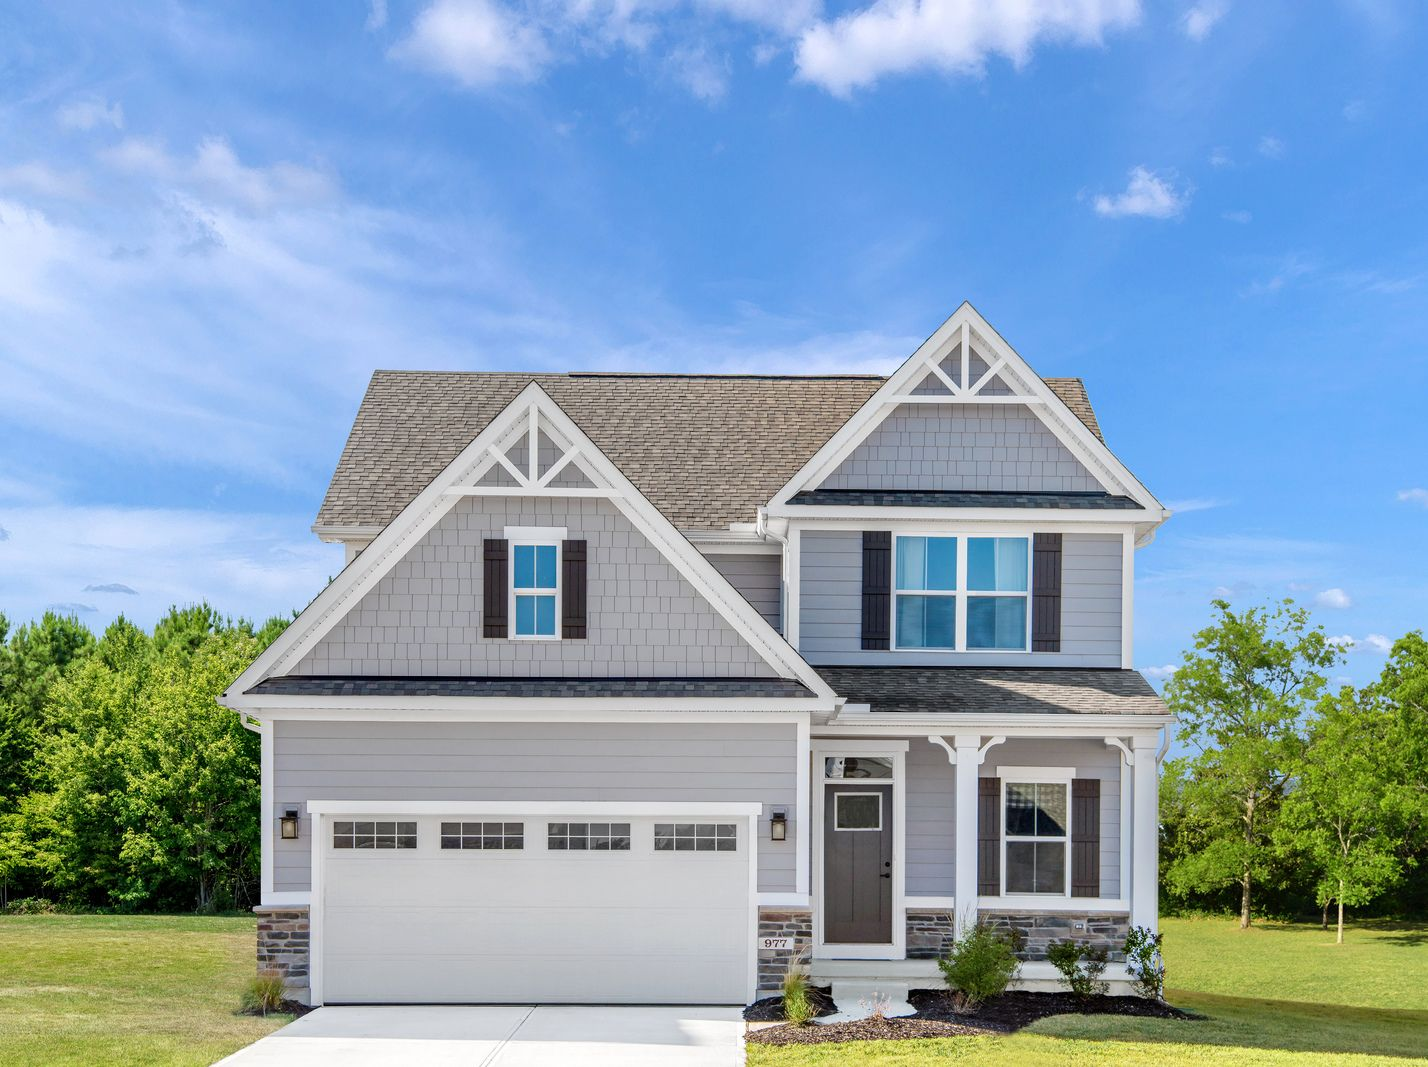 WELCOME HOME TO HAMPTON PLACE RESERVES:Hampton Place Reserves from low $200s. 2-story & ranch homes with cul-de-sac & pond view homesites. Close to I-90, I-480 & I-80.Click here to schedule your 1-on-1 or virtual visit today!